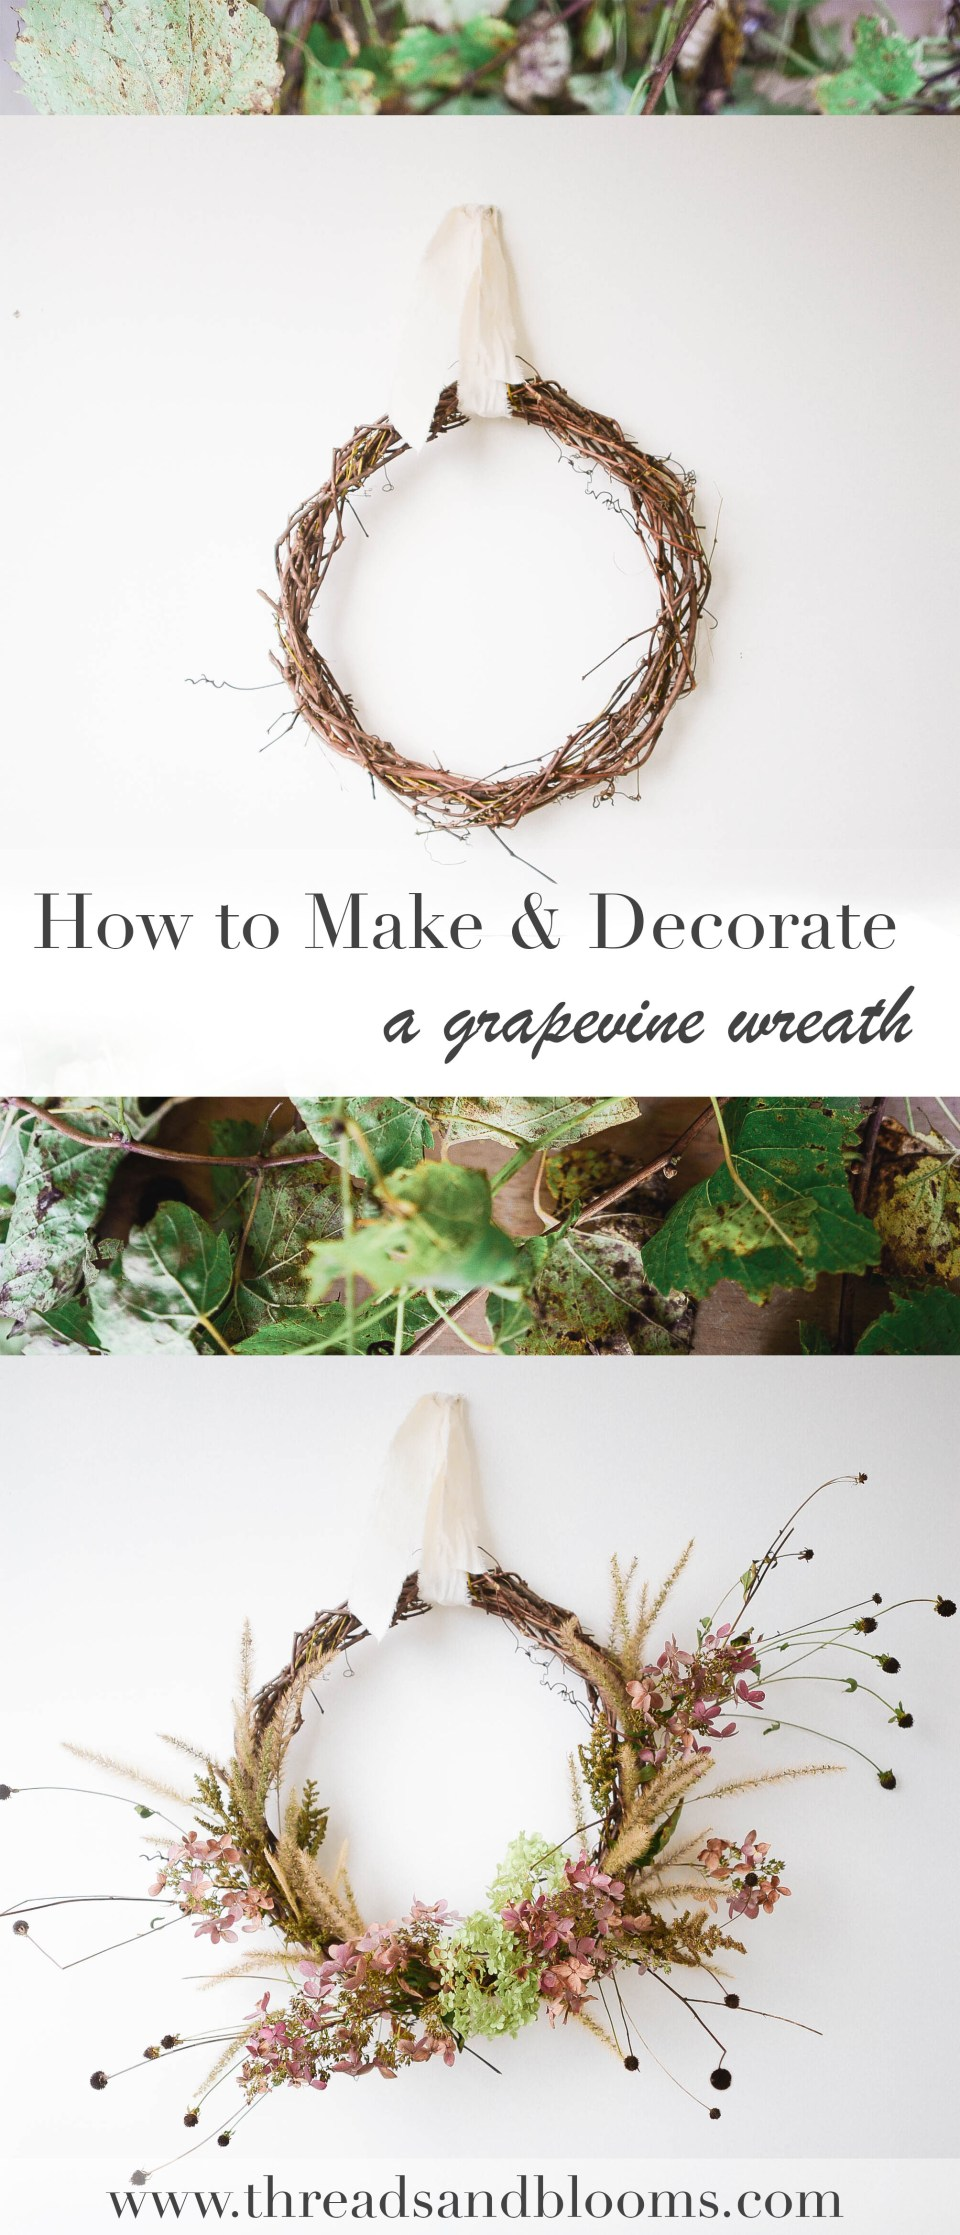 How to Make a Wreath - Fall DIY